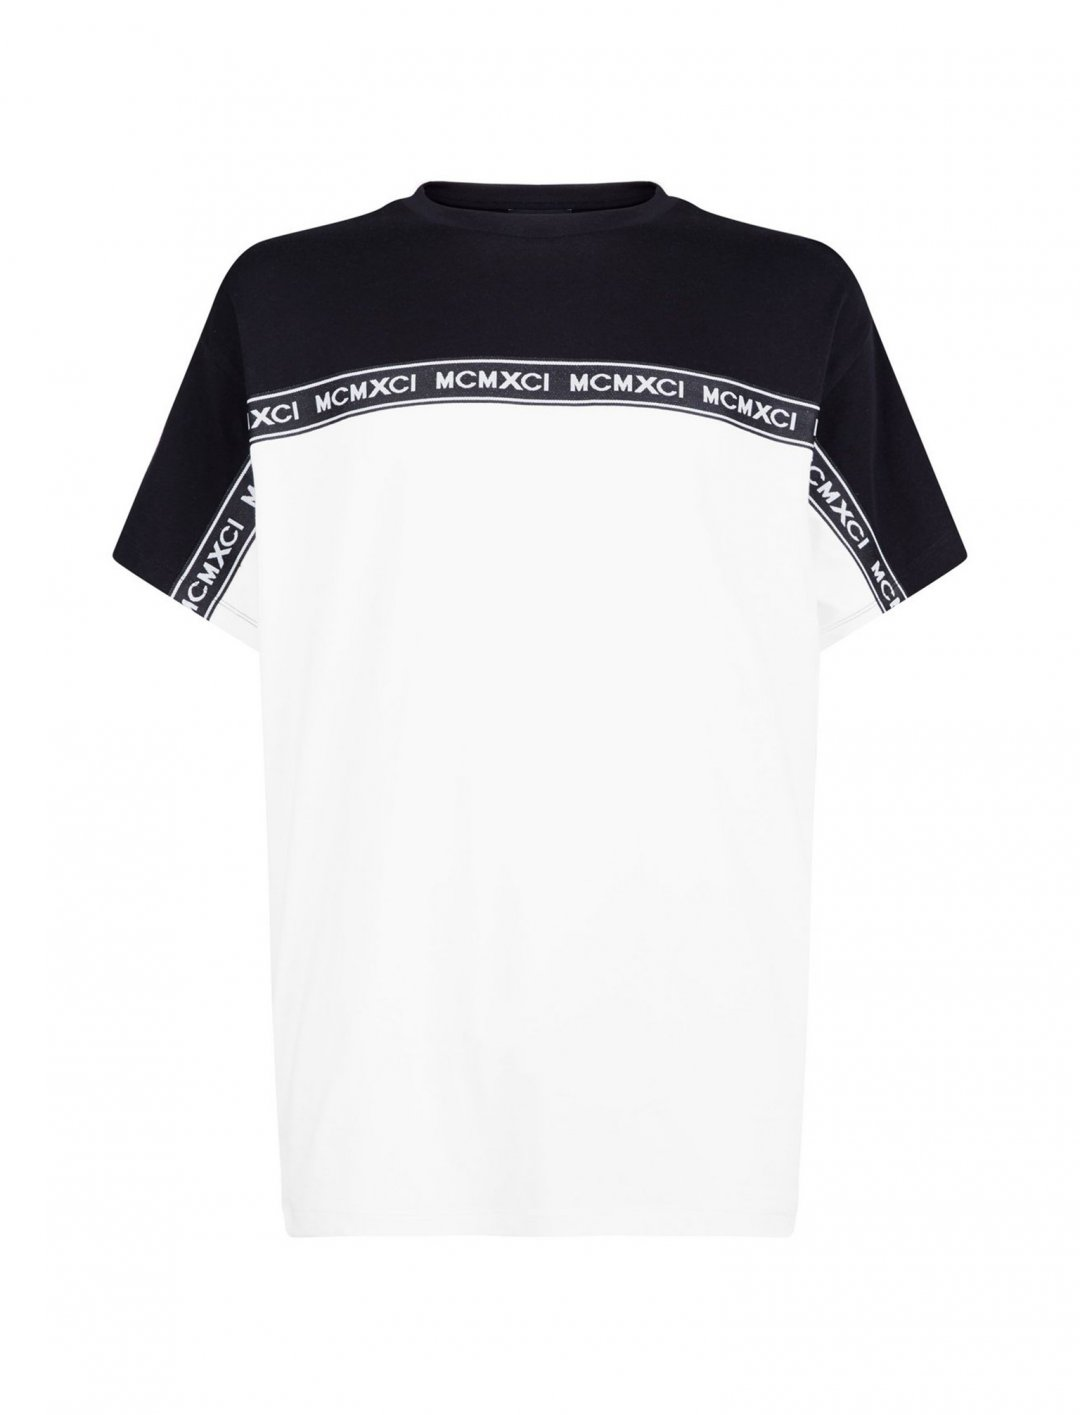 "New Look Slogan Tape Shirt {""id"":5,""product_section_id"":1,""name"":""Clothing"",""order"":5} New Look"